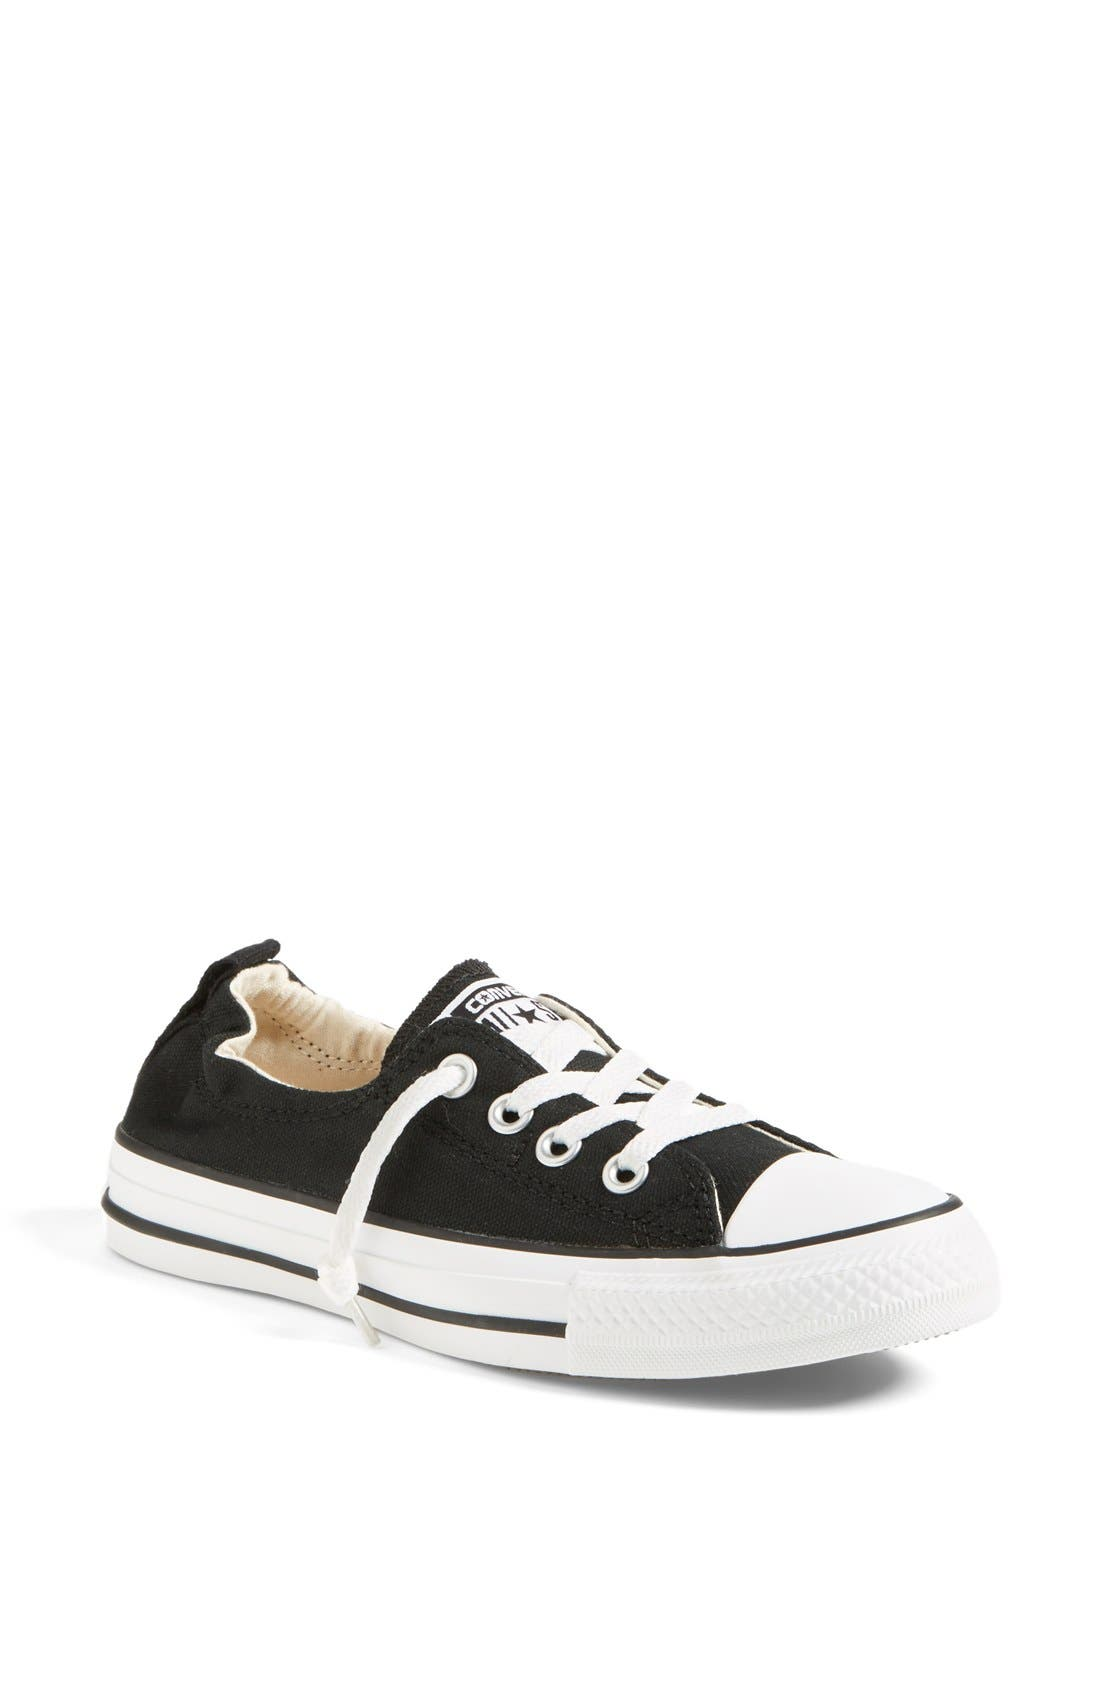 converse shoes unisex sizing shoes width ee